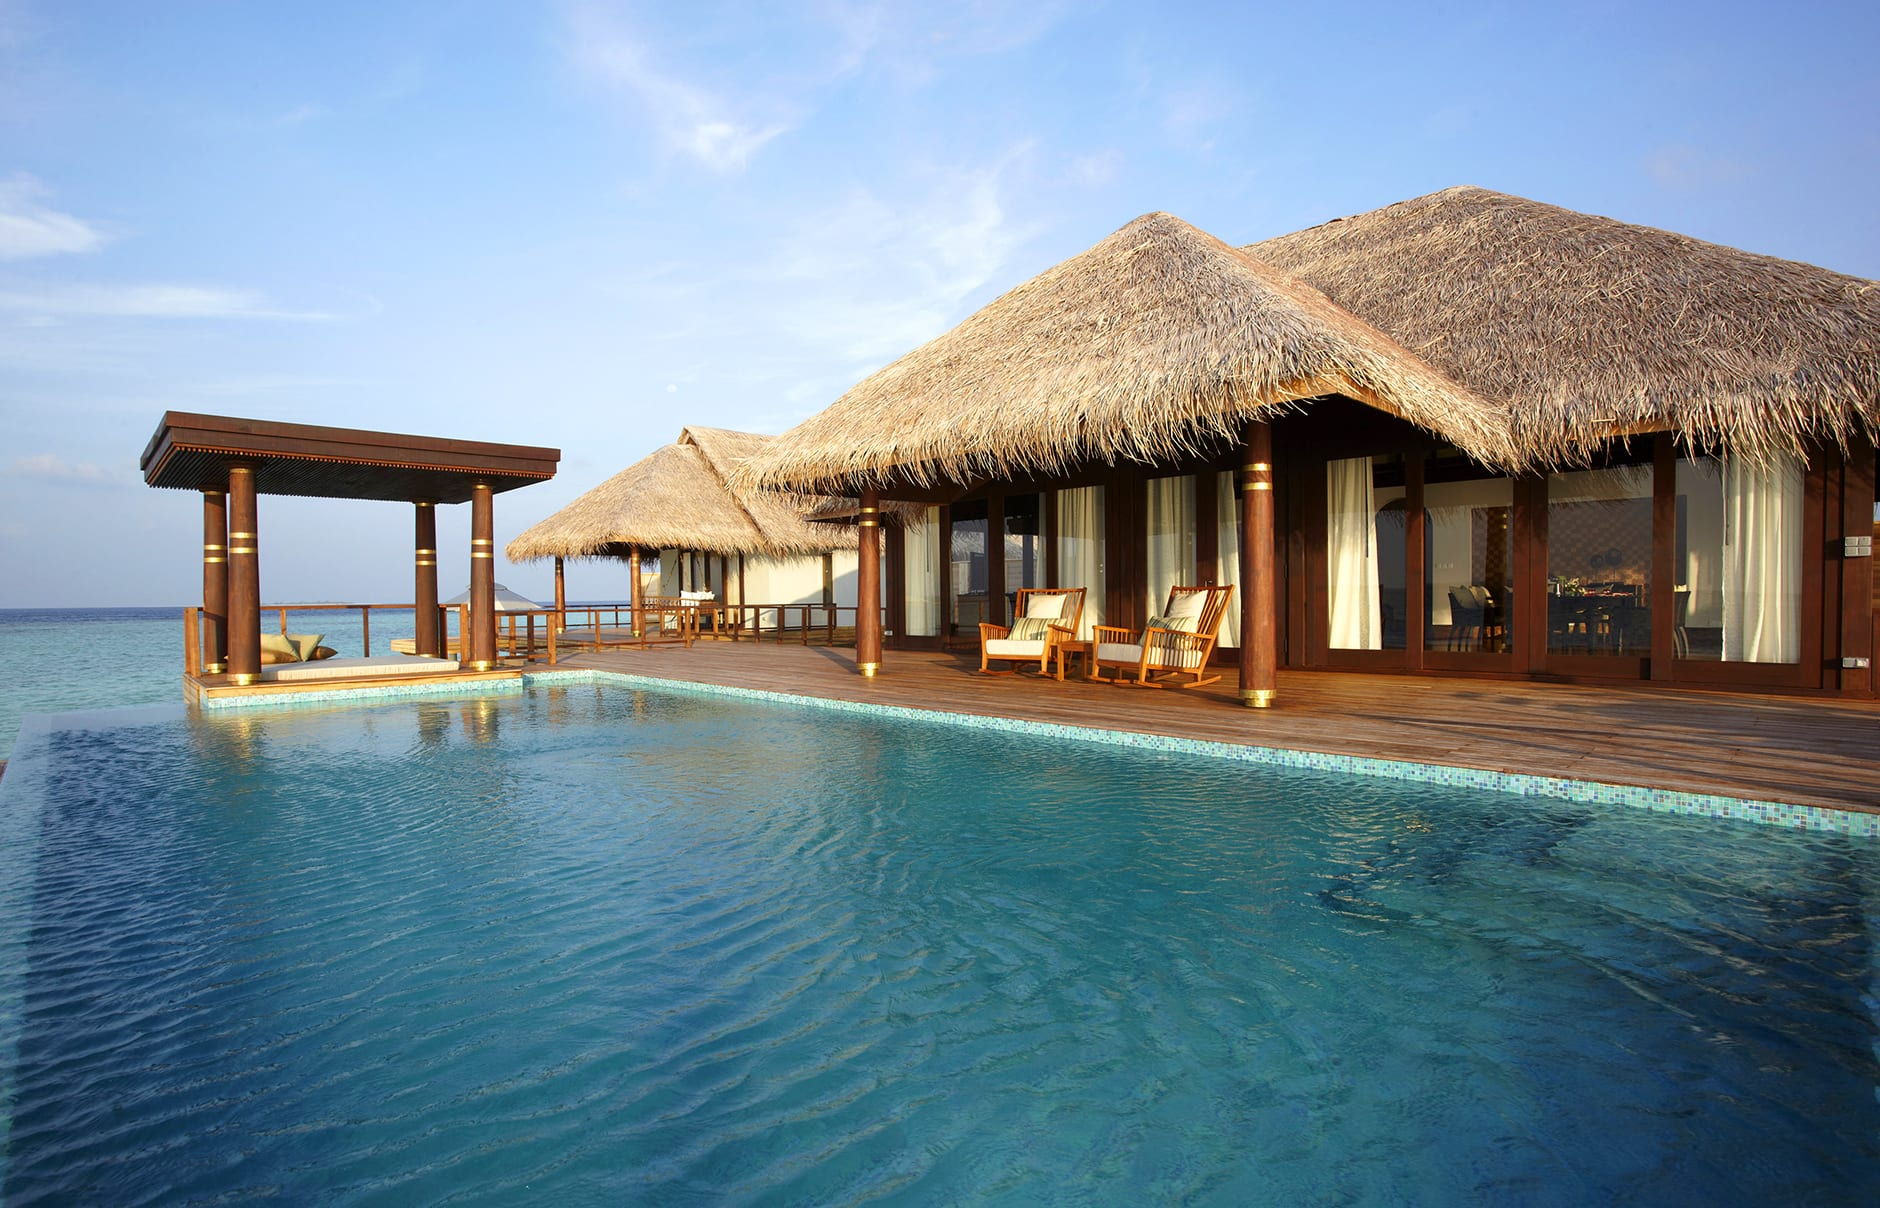 Anantara kihavah villas luxury hotels travelplusstyle for Villas wallpaper